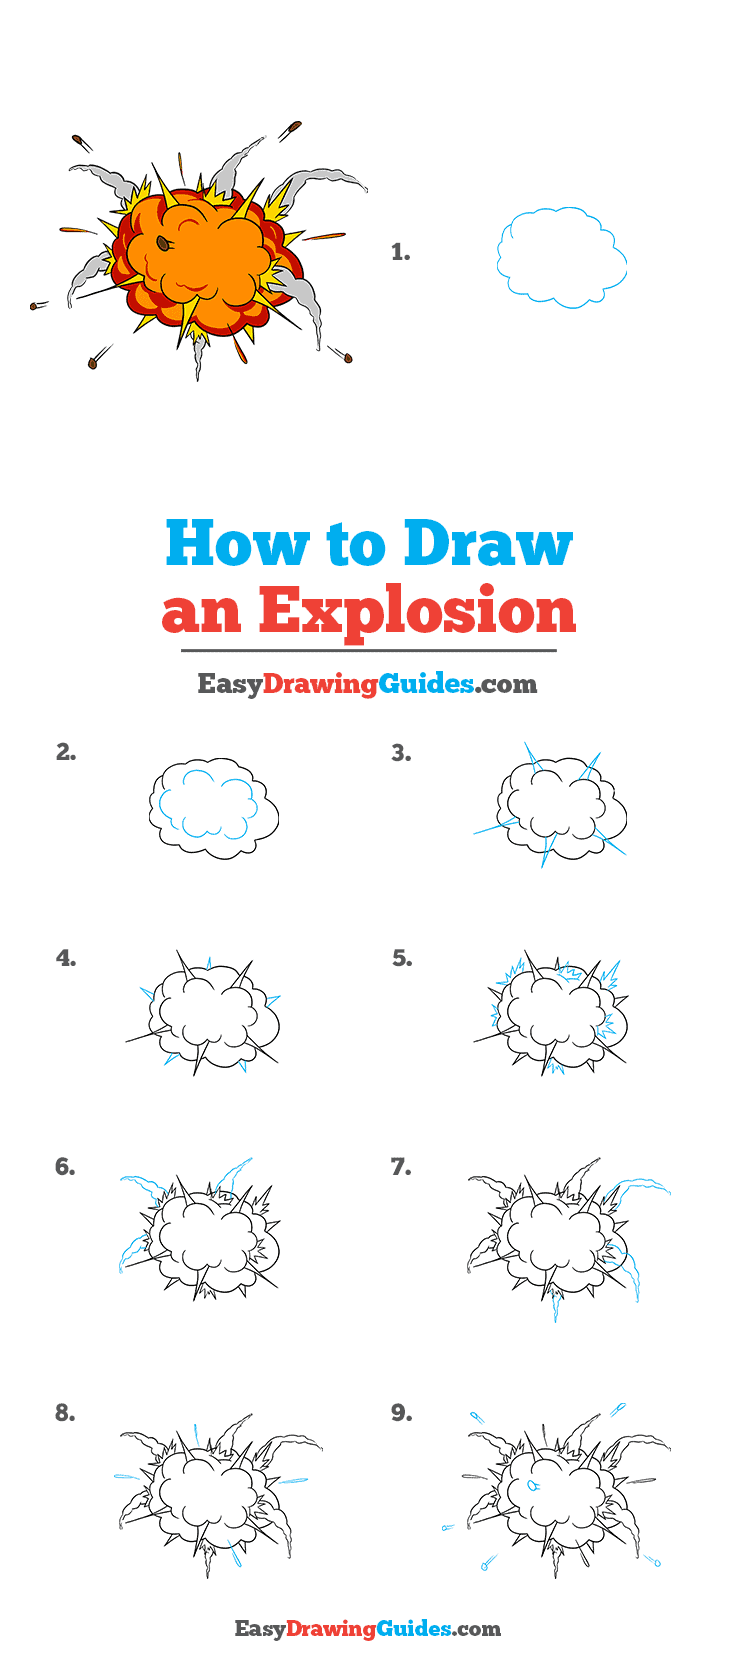 How to Draw an Explosion Step by Step Tutorial Image